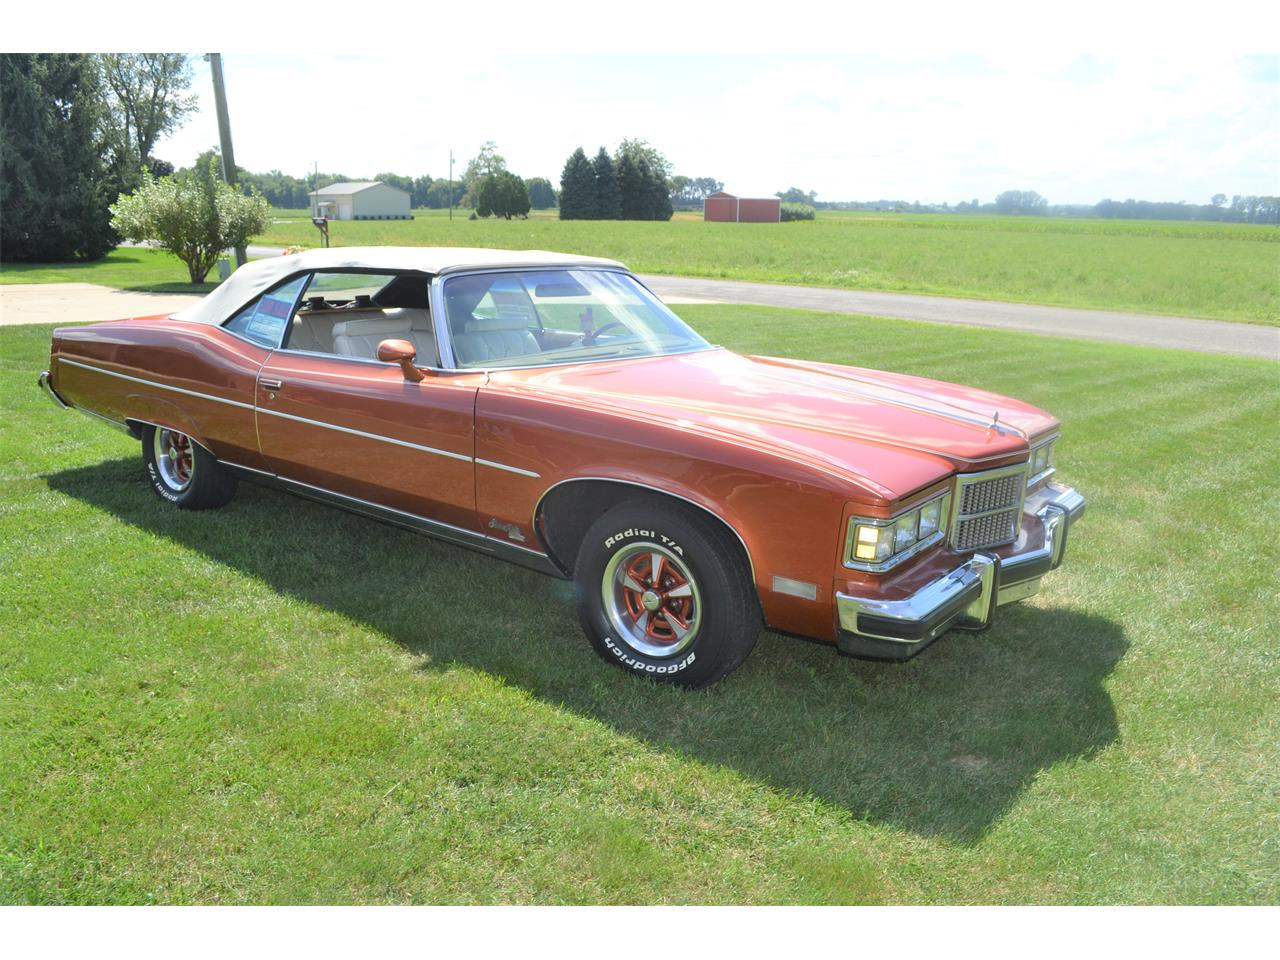 Large Picture of 1975 Pontiac Grand Ville located in Indiana - $17,500.00 Offered by a Private Seller - OI2B